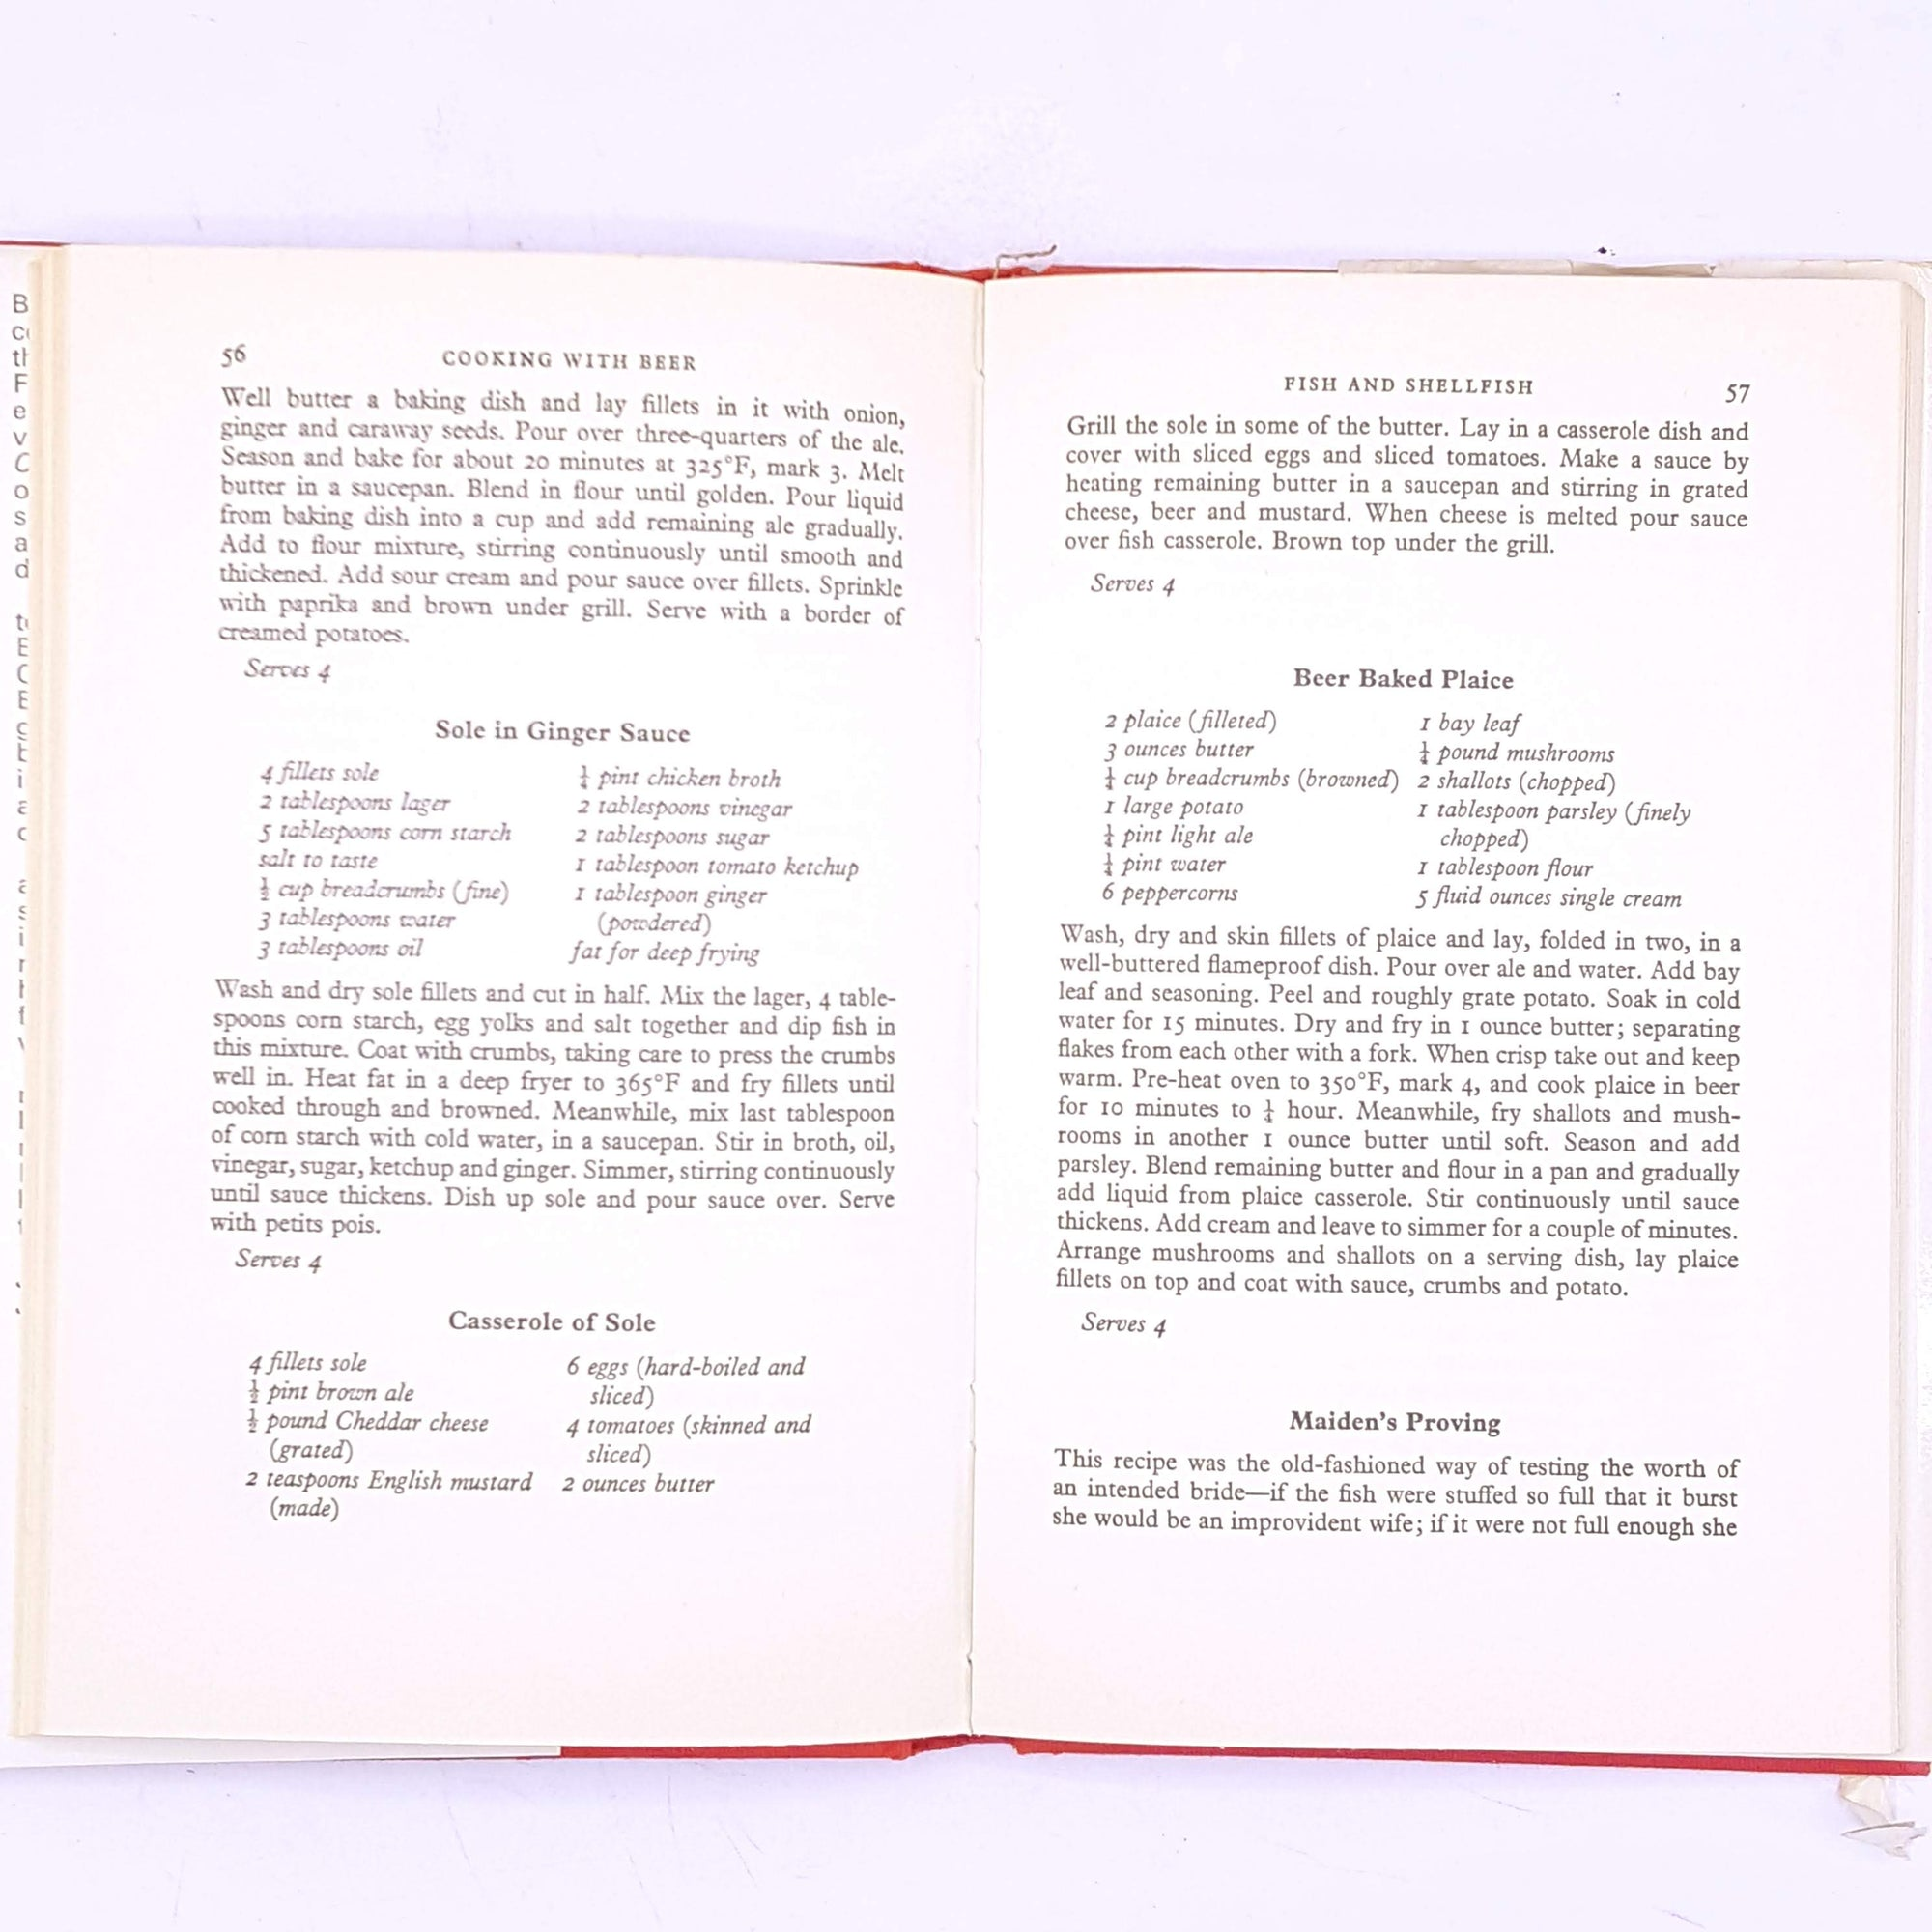 old-thrift-country-house-library-for-foodie-breakfast-lunch-dinner-cookbook-antique-decorative-vintage-cookbooks-recipes-food-meals-cooking-baking-cook-bake- Cooking-With-Beer-by-Carole-Fahy-alcohol-books-classic-patterned-